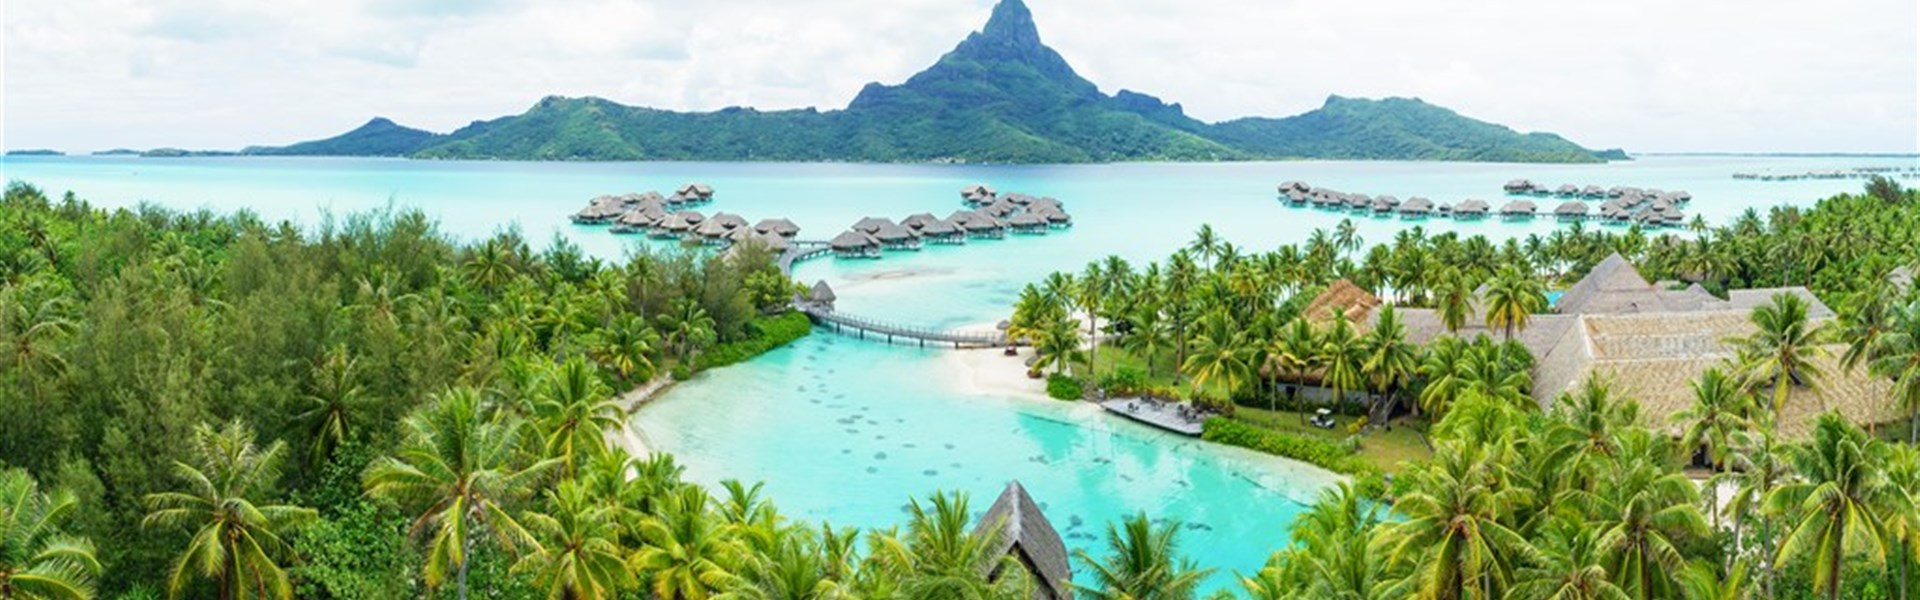 Marco Polo - Intercontinental Bora Bora Resort & Thalasso Spa  - ostrov Bora Bora -